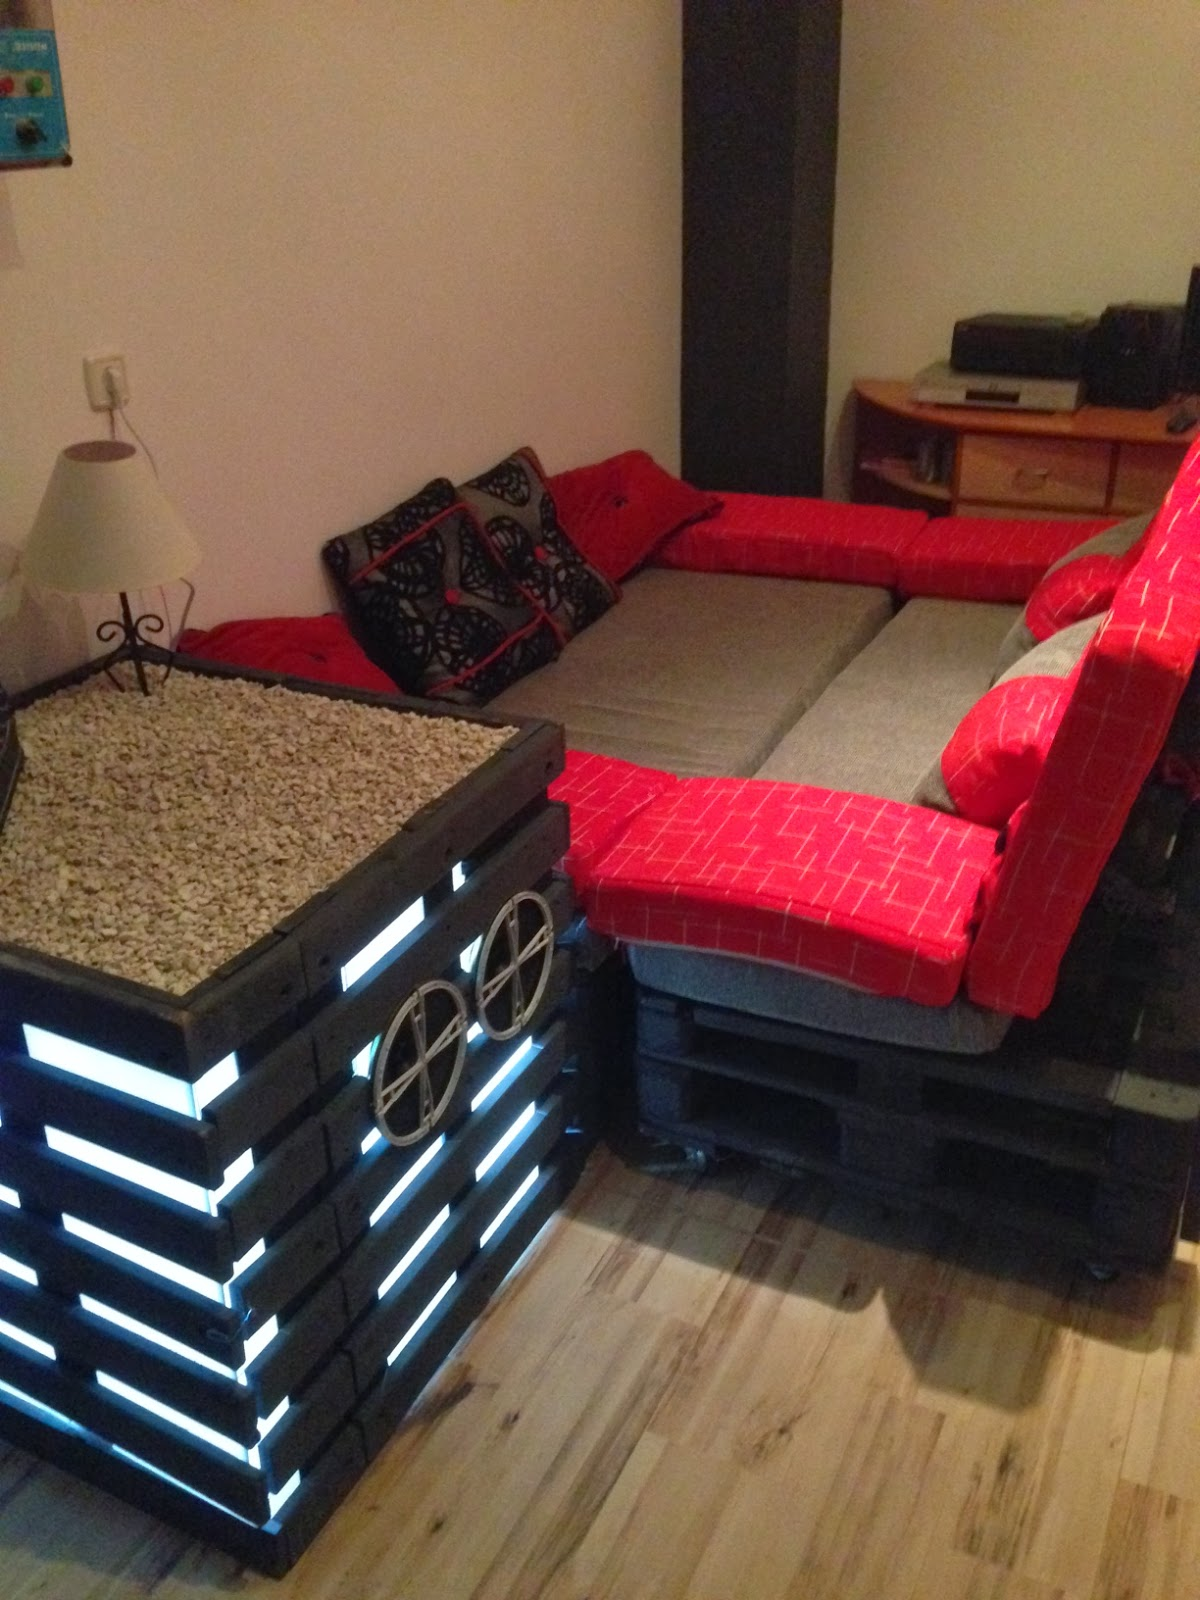 Sofas y mesita home cinema hechos de for Sofa exterior reciclado